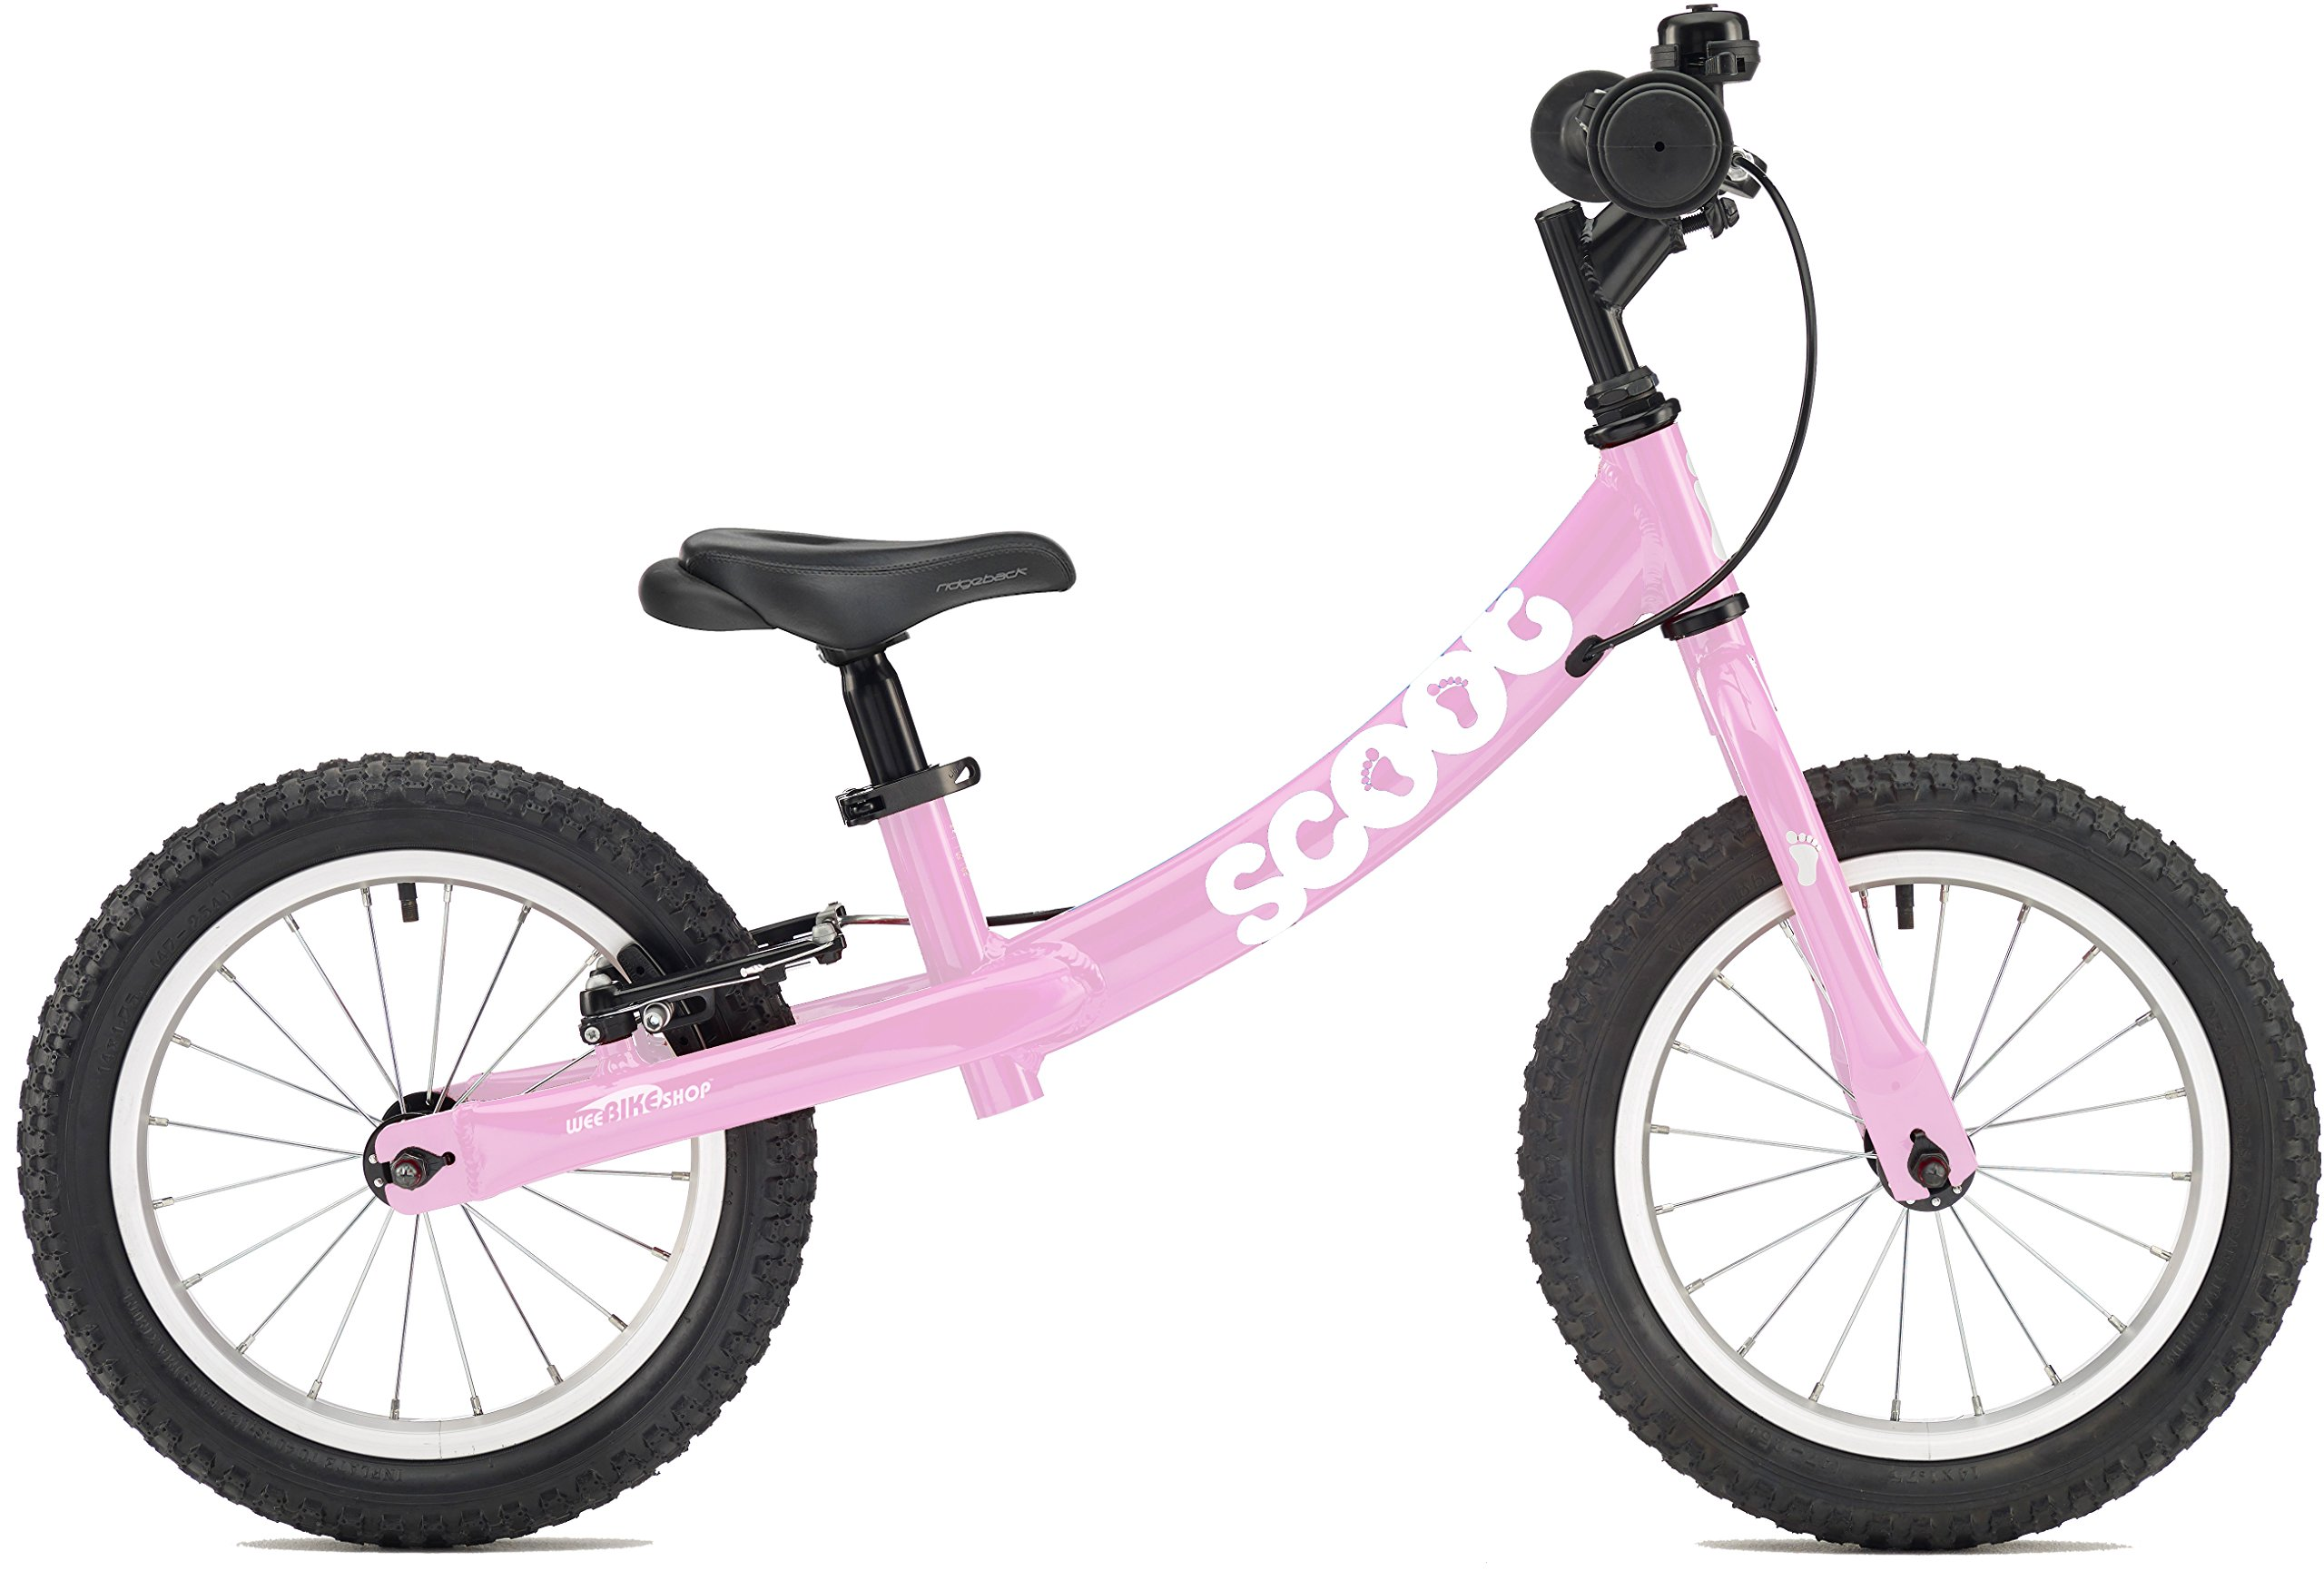 2018 US Edition Scoot XL 14'' Balance Bike in Pink (Age 4-7) by Ridgeback UK